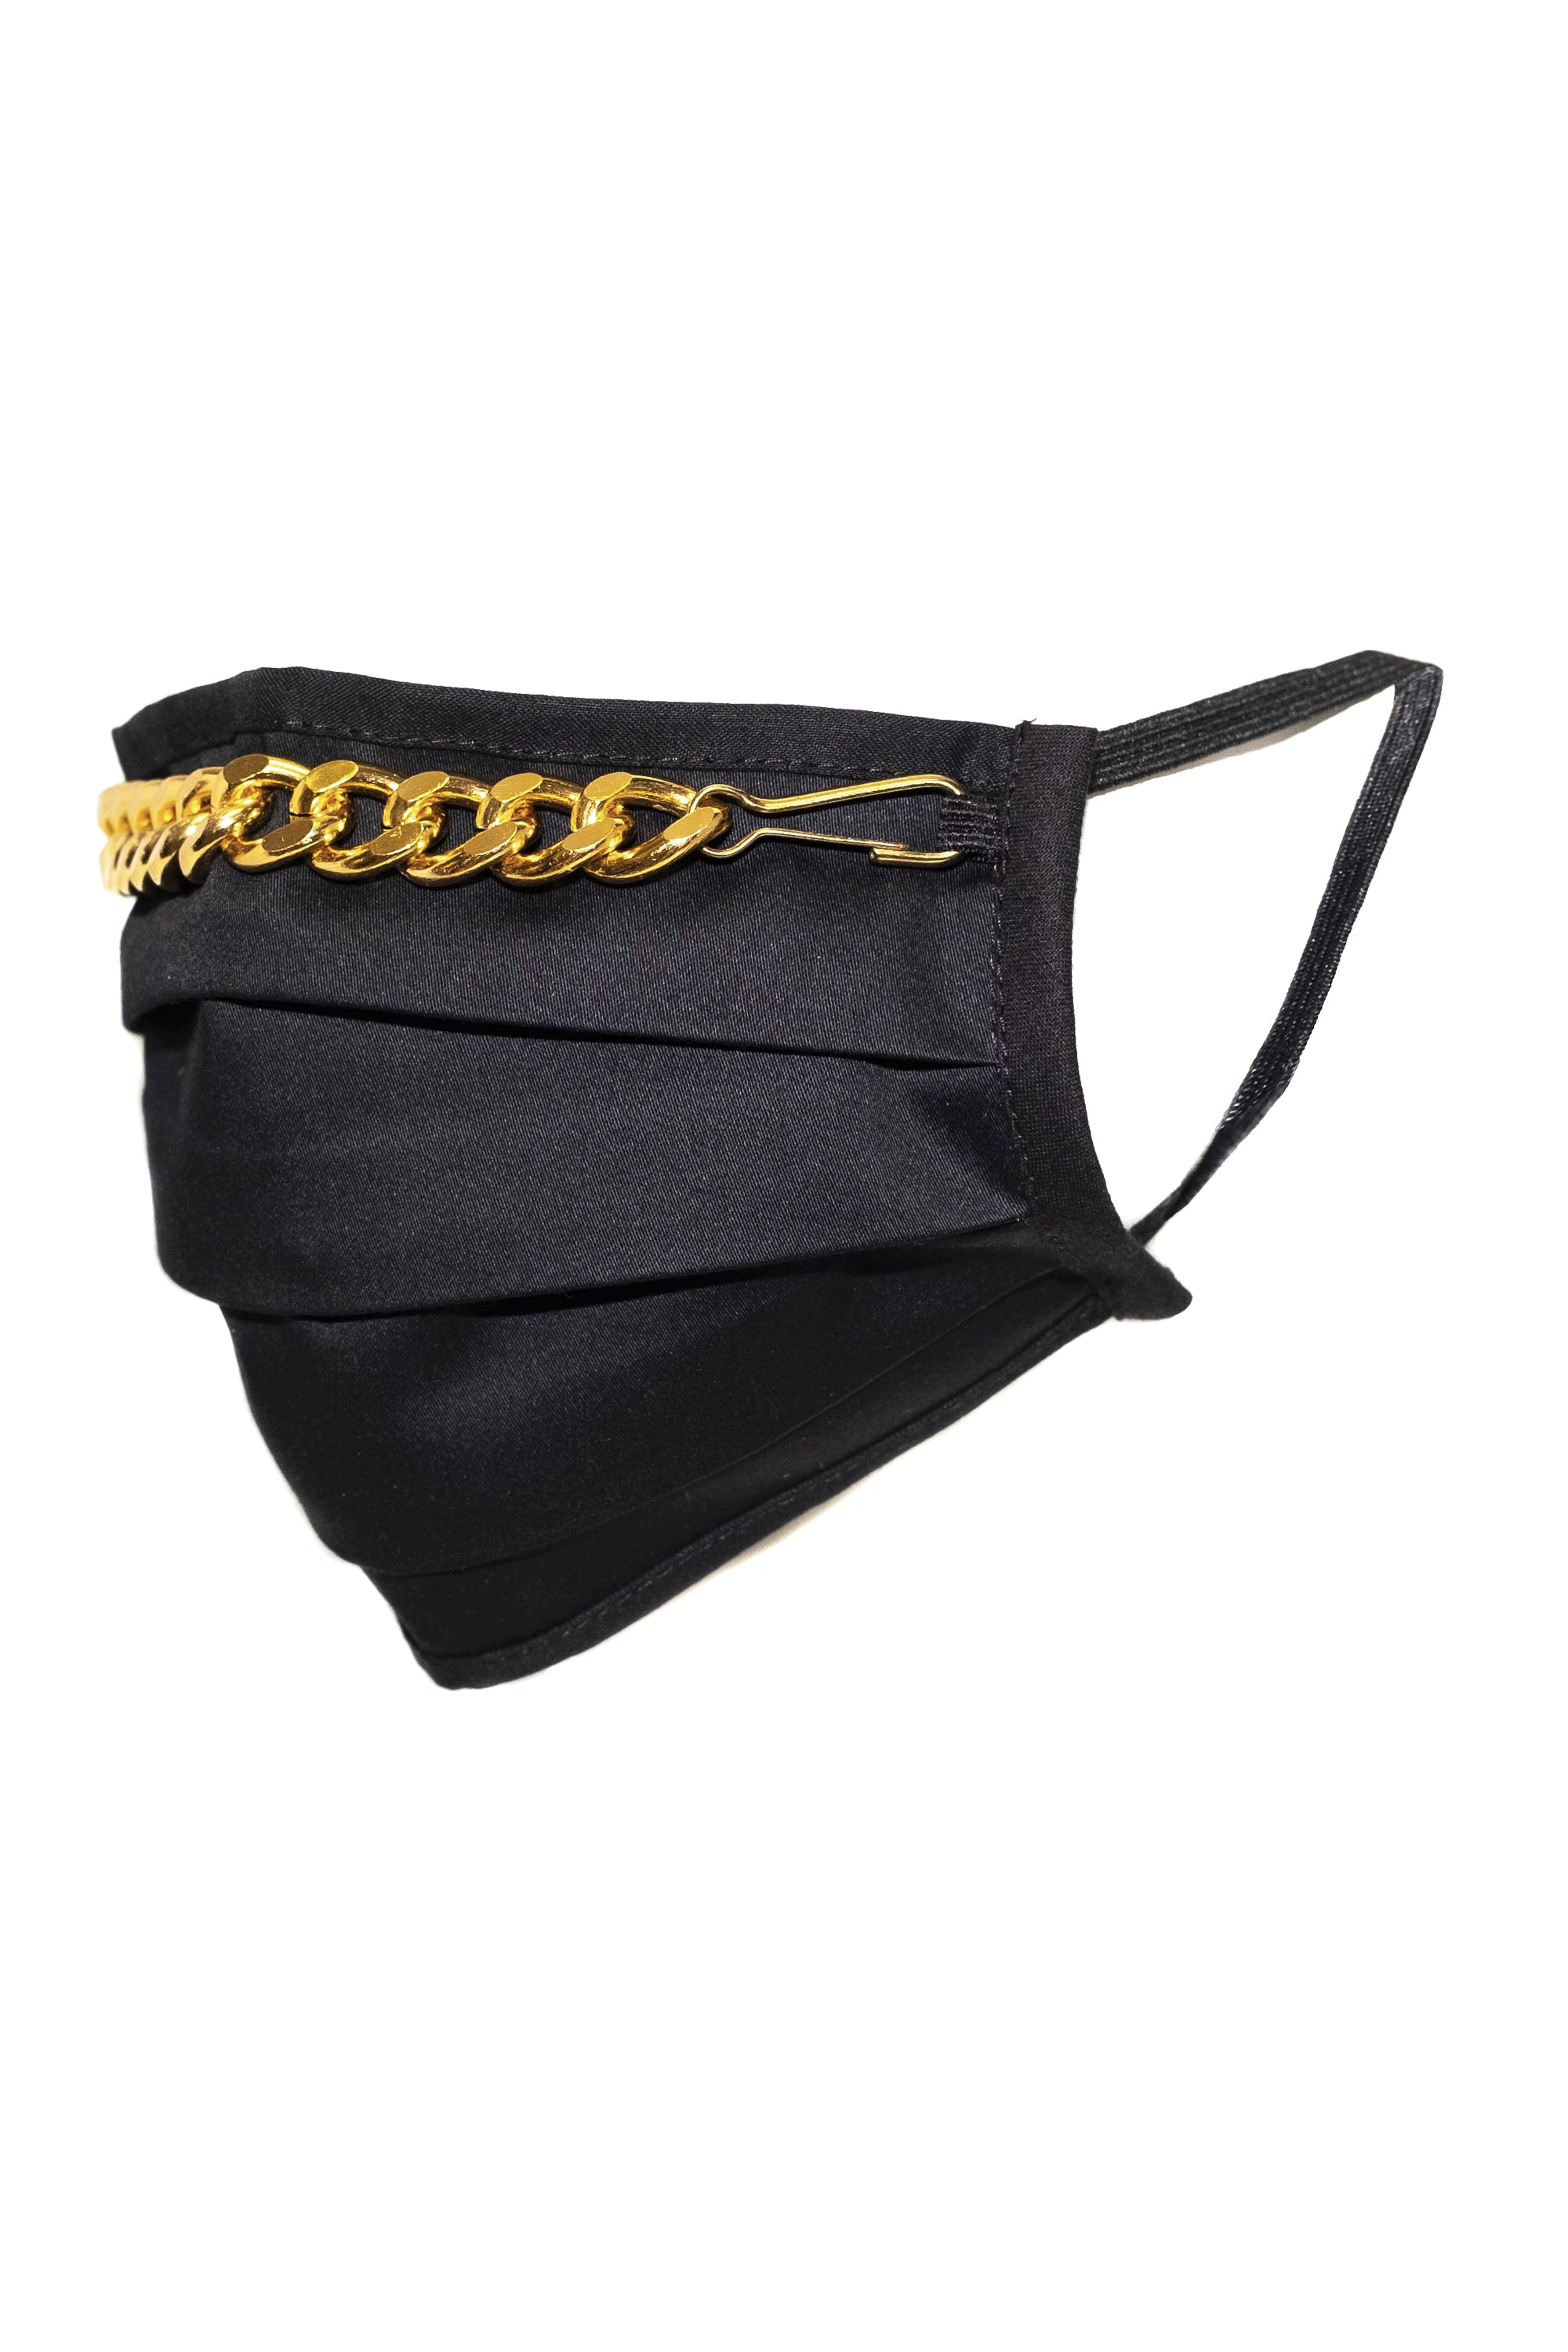 FACE MASK_Gold Chain [2-pack]